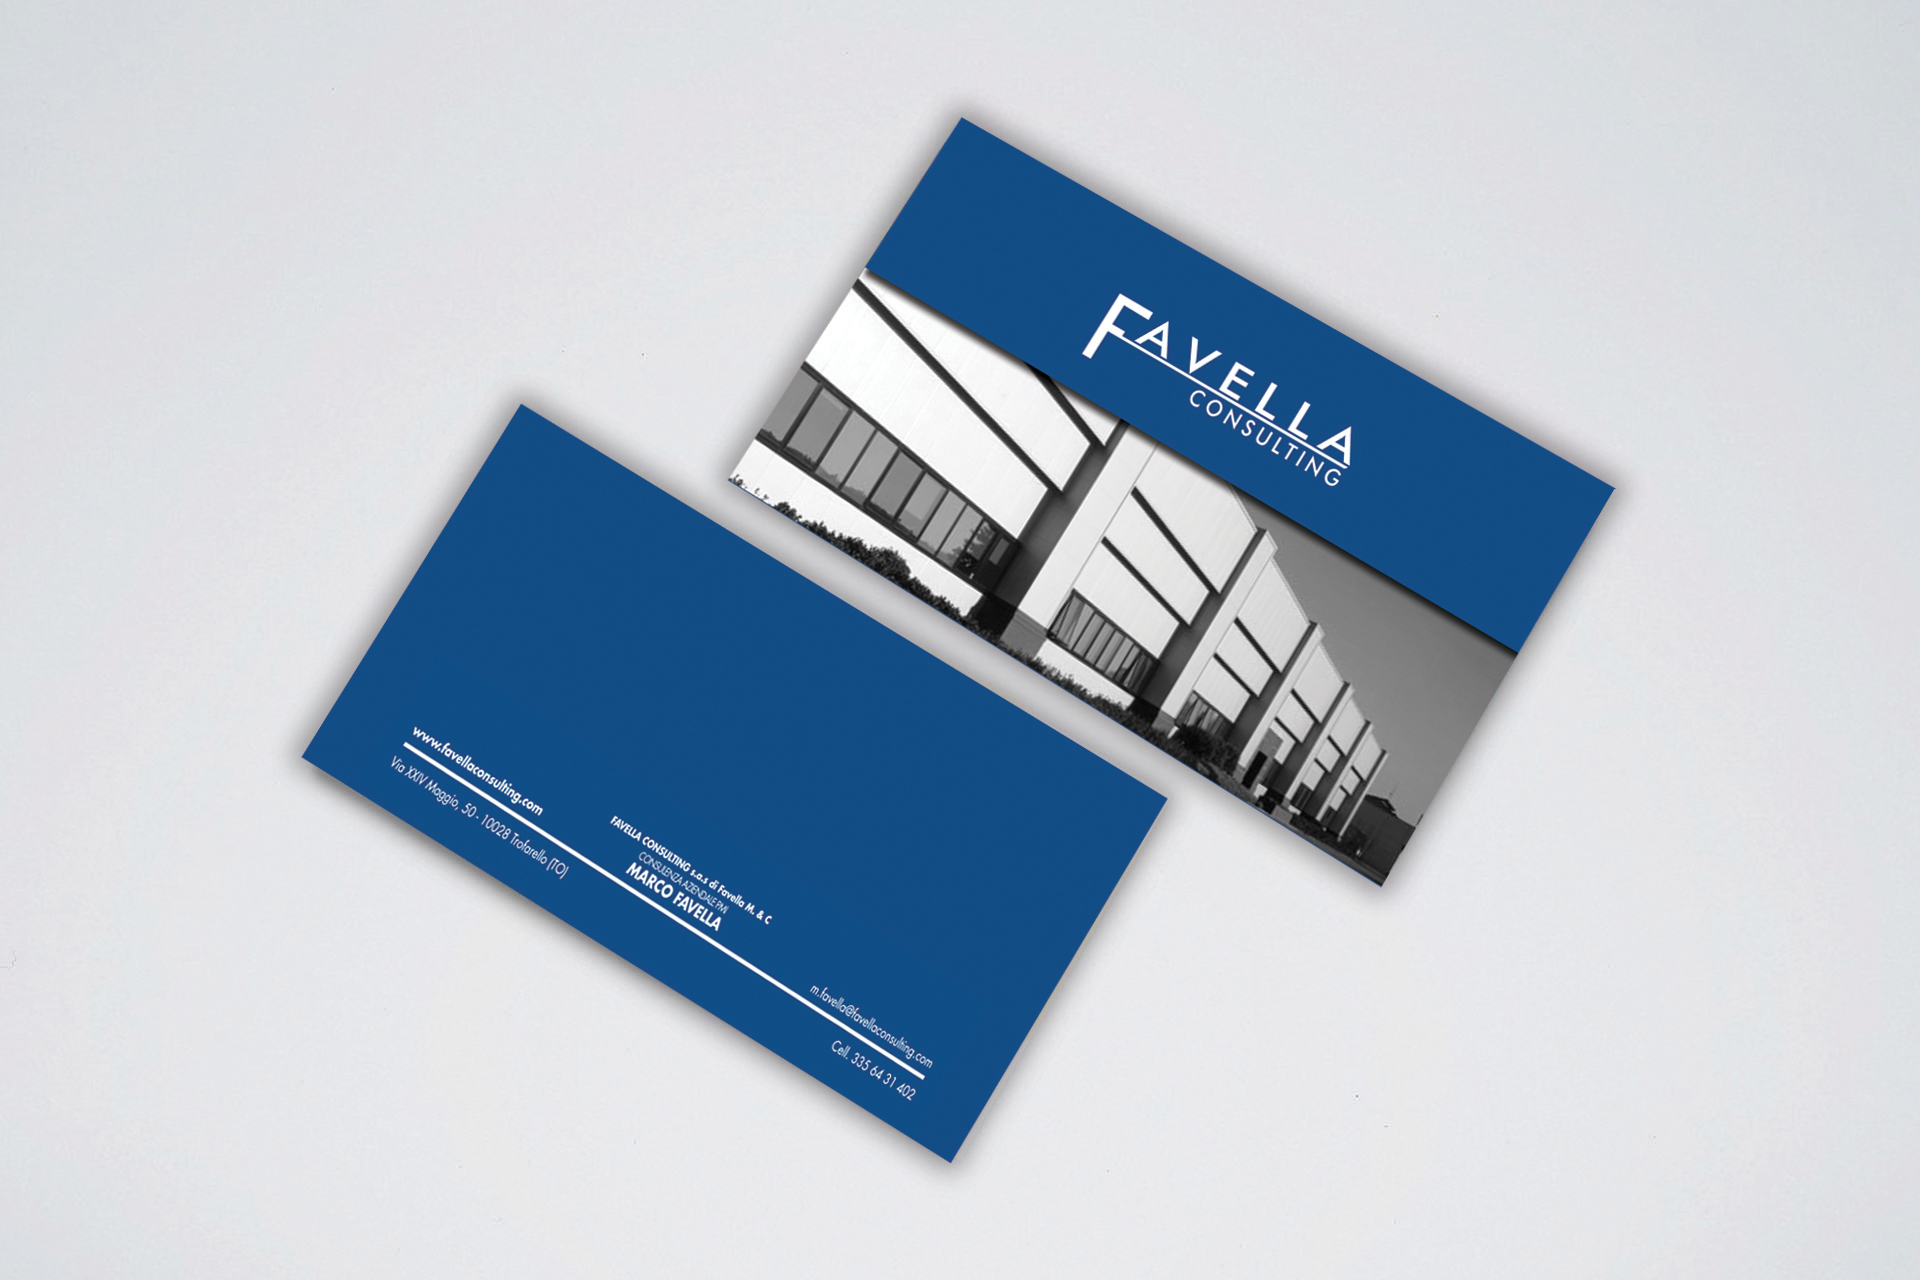 Business Card Favella Consulting realizzato da Alice Bottino Visual Designer